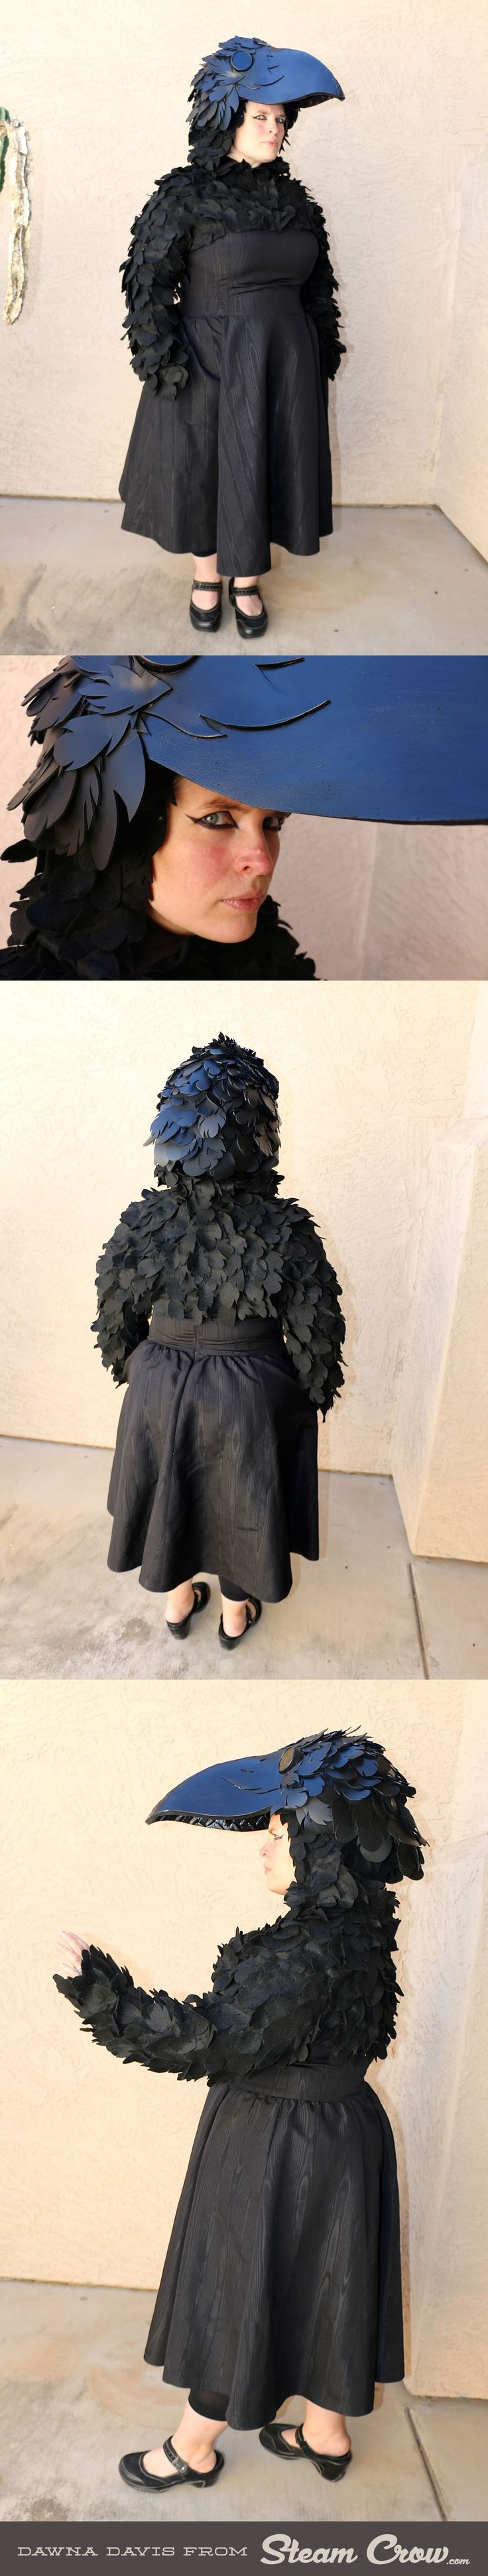 Hand made Crow costume; the jacket is made out of felt, and the headpiece is made from EVA and craft foam. http://www.steamcrow.com